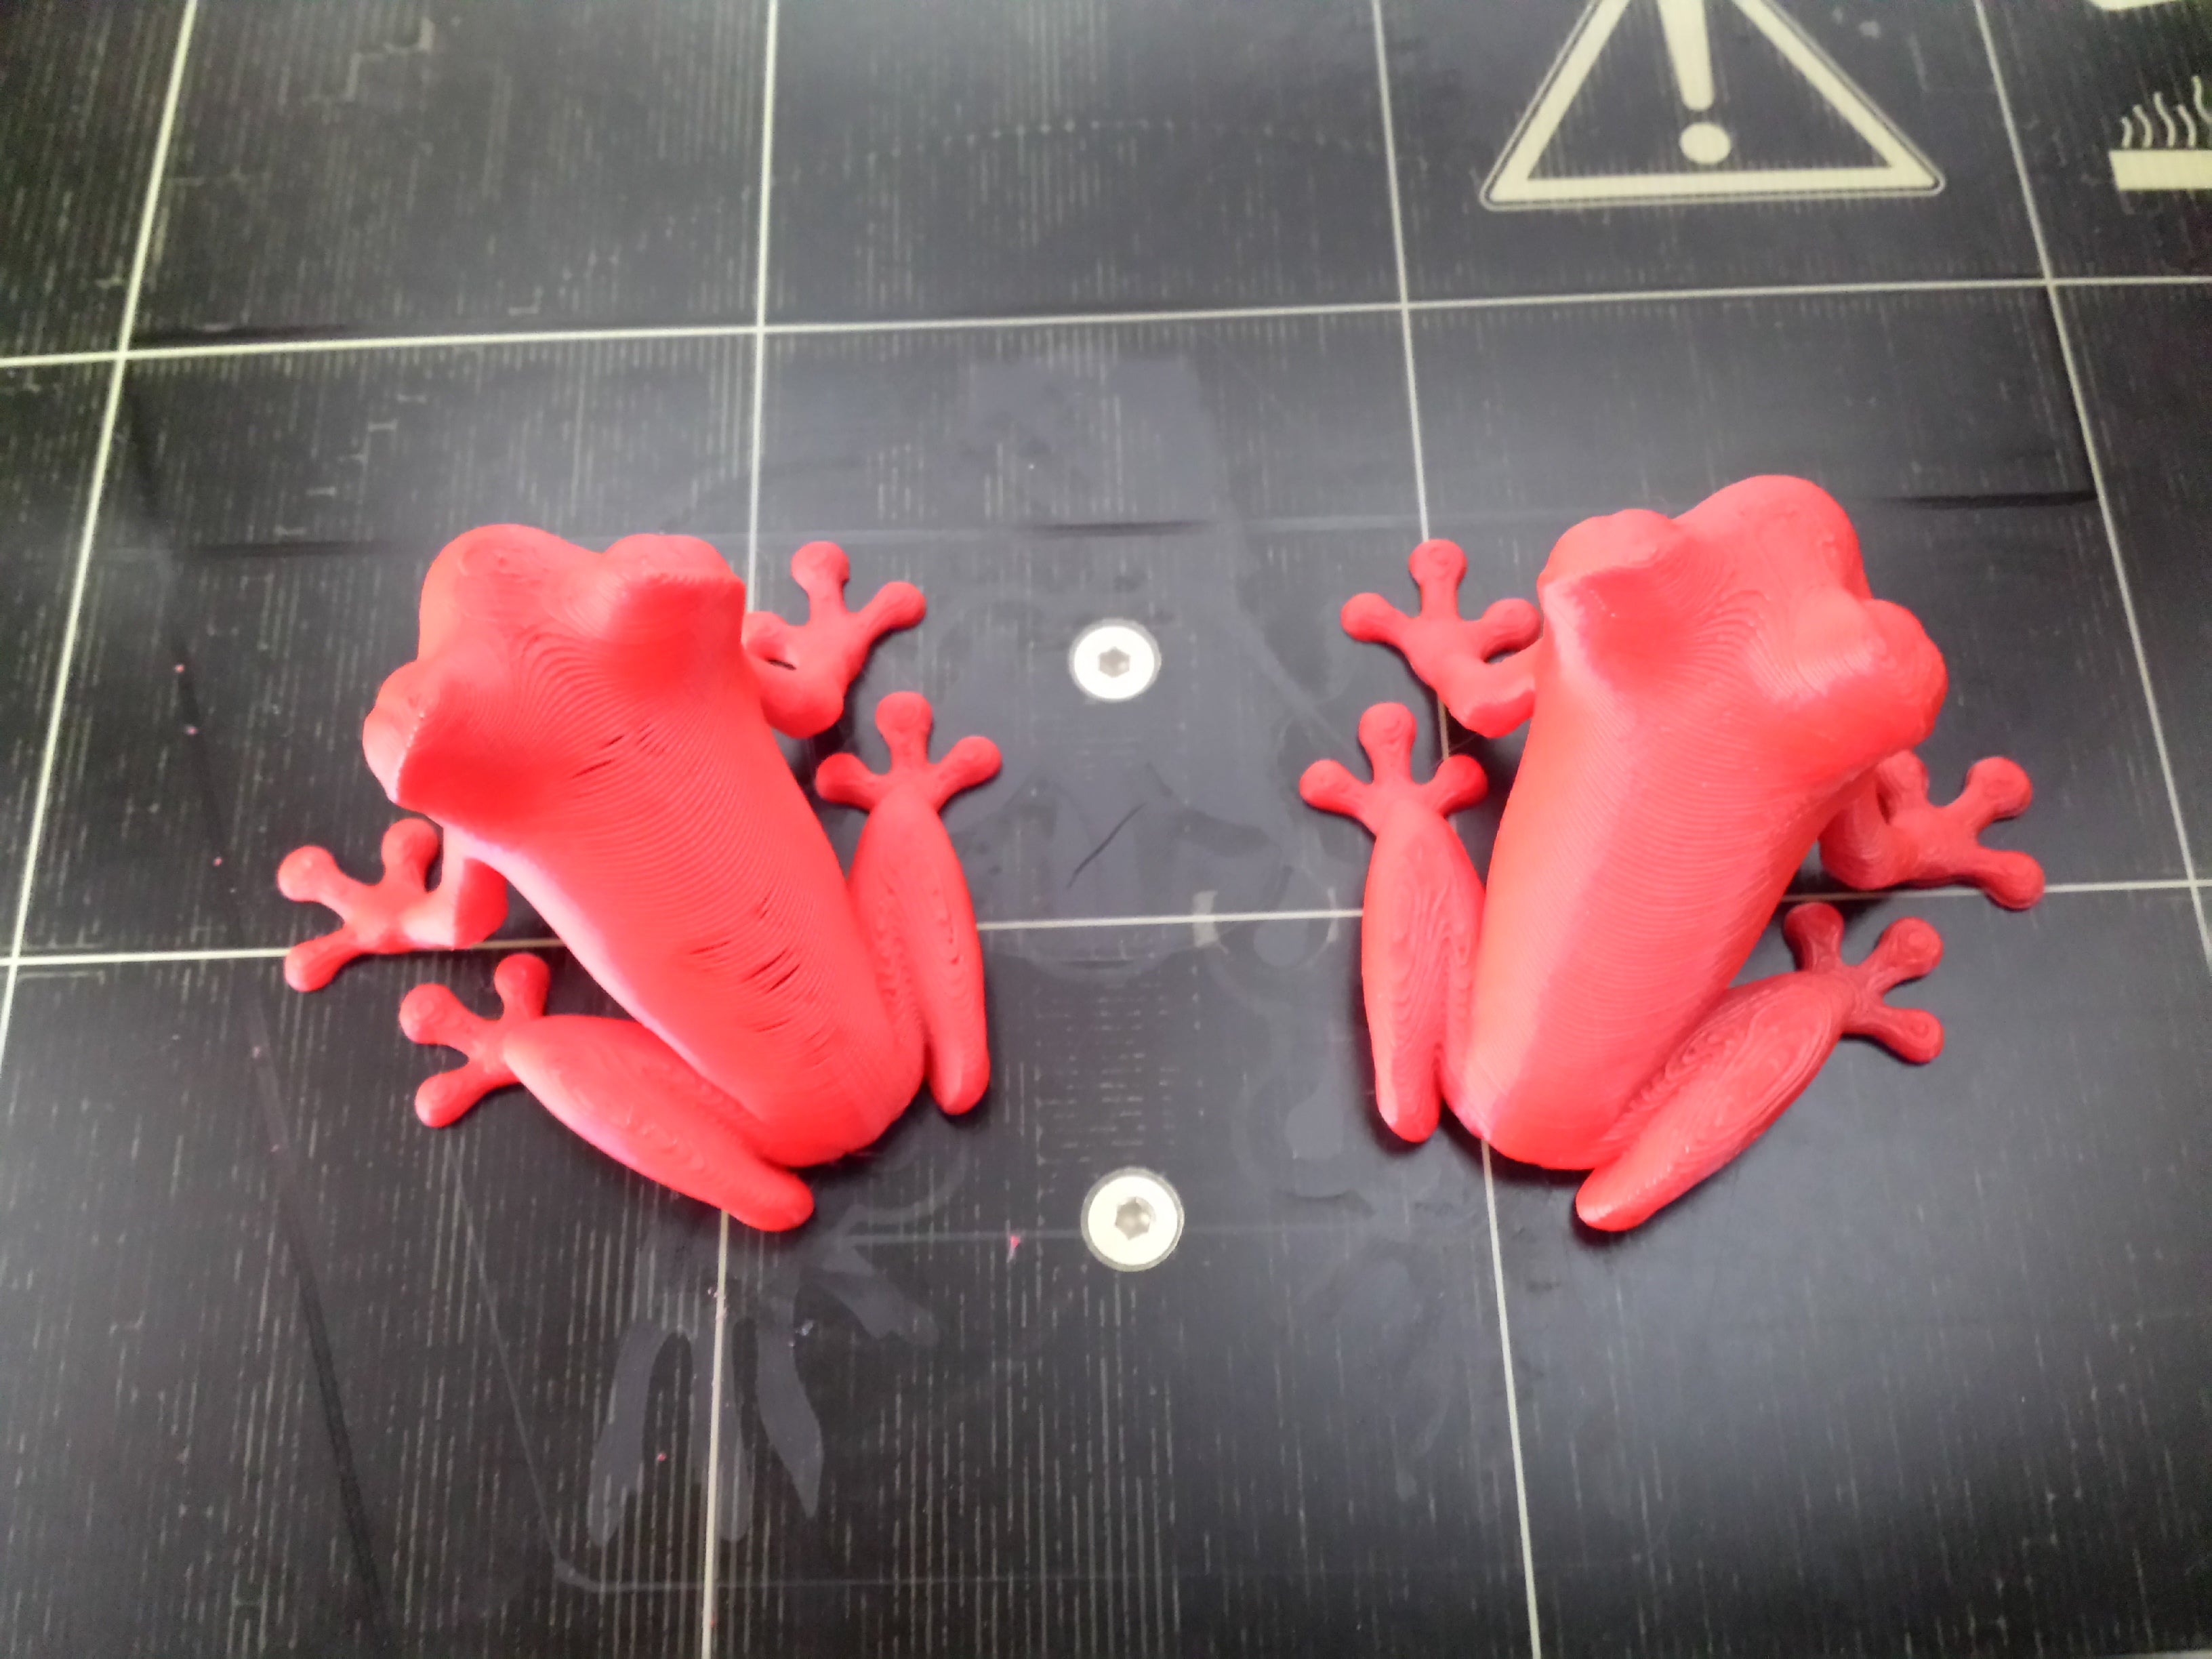 Picture of Treefrog comparison between two prints with Prusa i3 MK2 3D printer